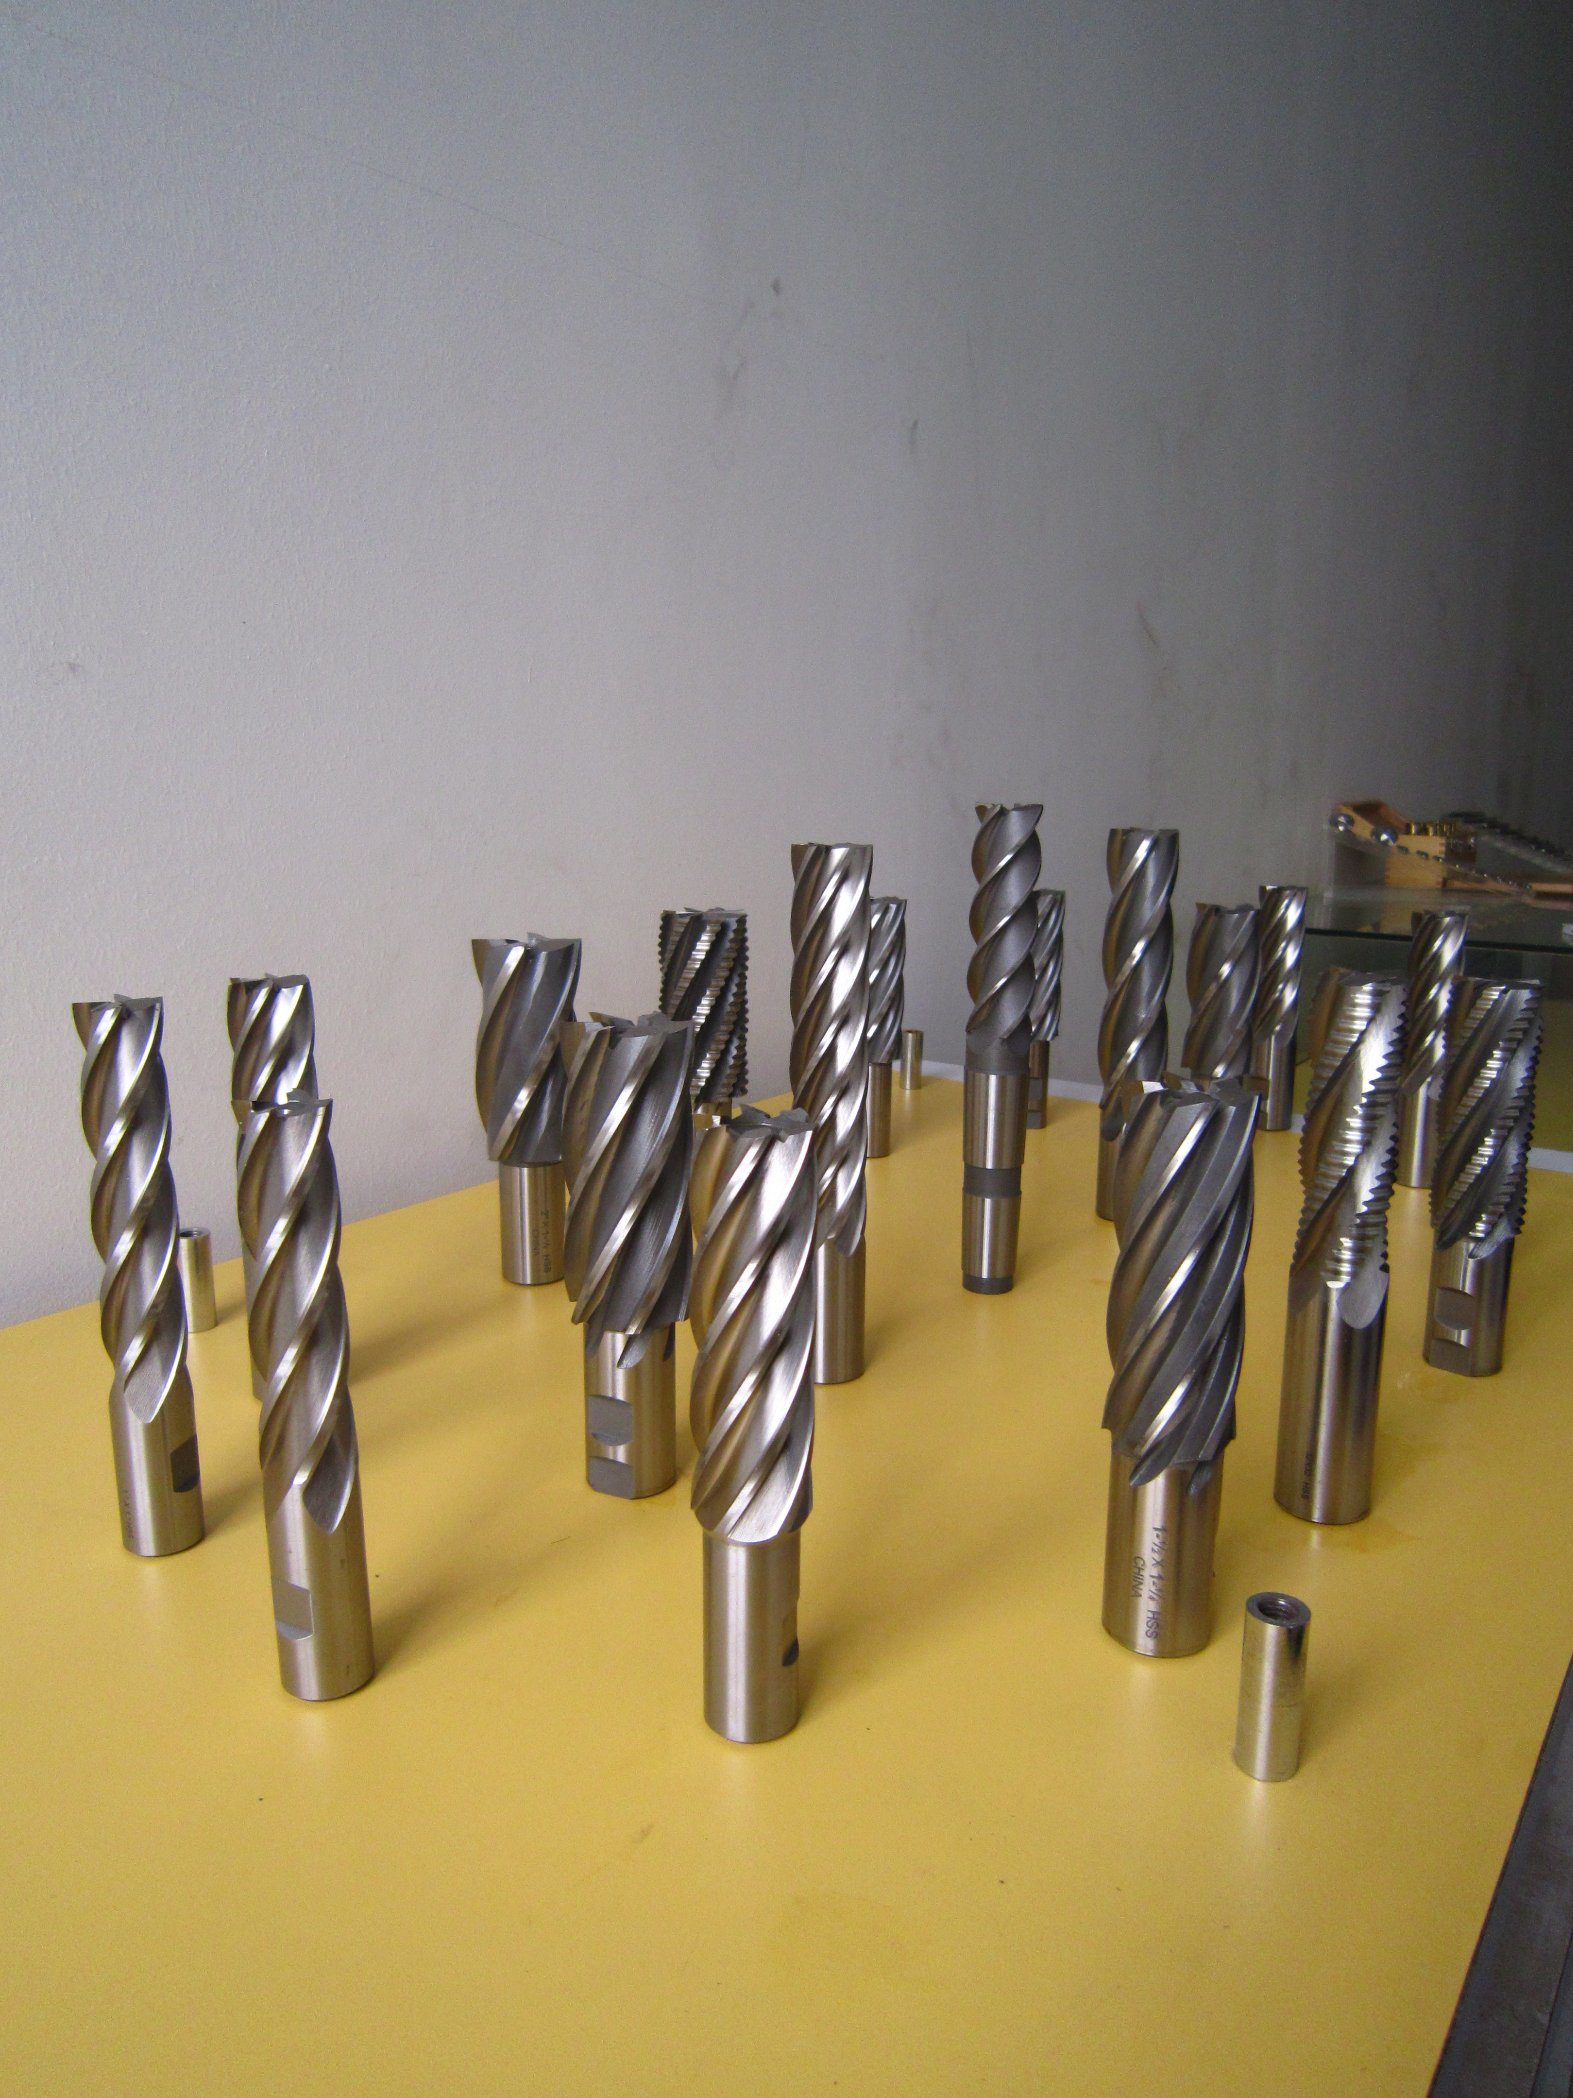 4 Flute Roughing End Mill